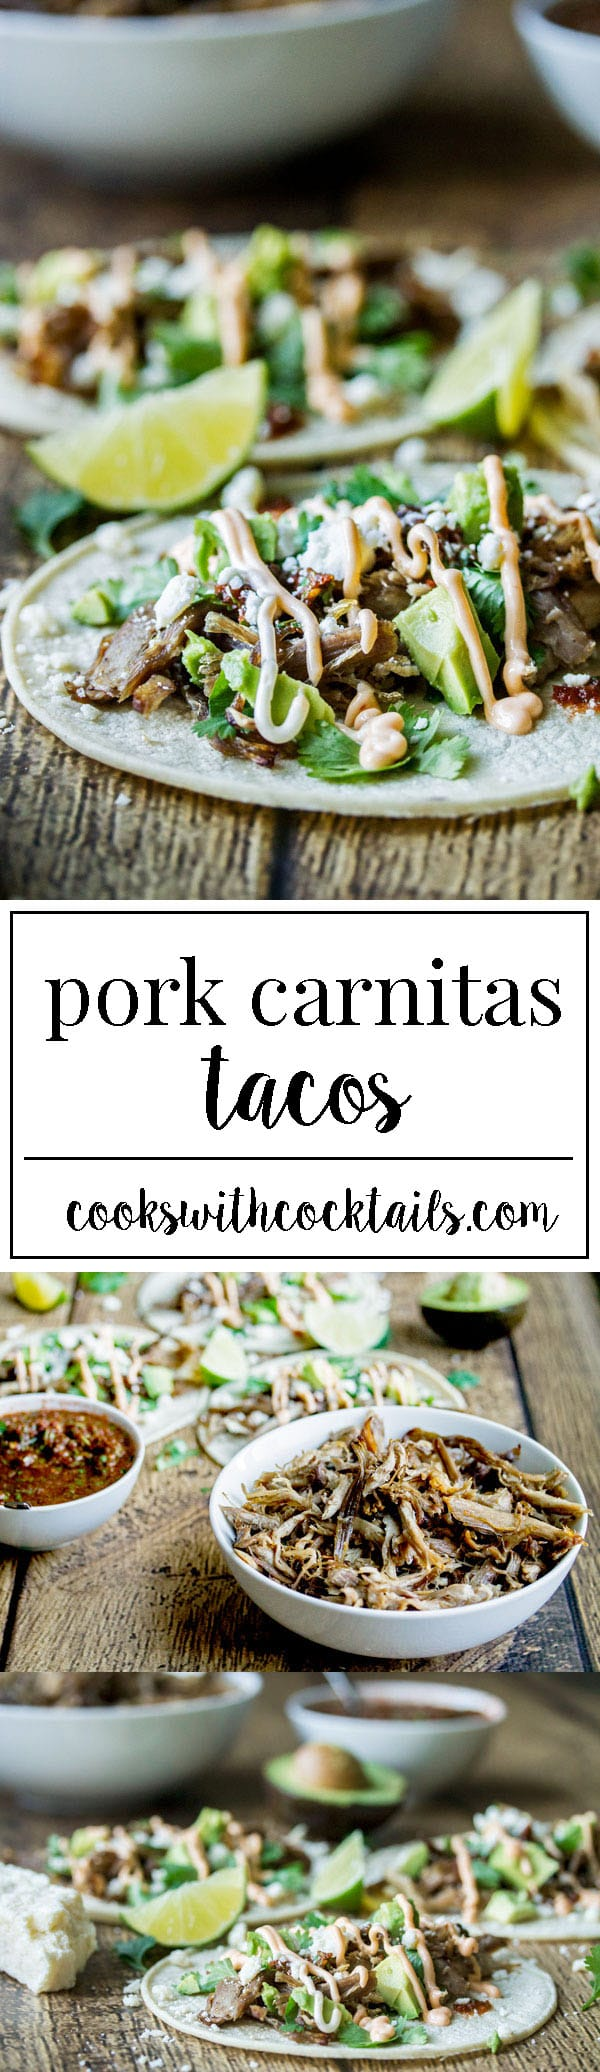 carnitas tacos with sweet and spicy shredded pork with crispy bits on the edges, fresh and fiery tomato salsa, creamy avocado, salty cojita cheese, and fragrant cilantro all topped off with spicy mayo and lime. #porktacos #carnitas #tacorecipe #streetfood